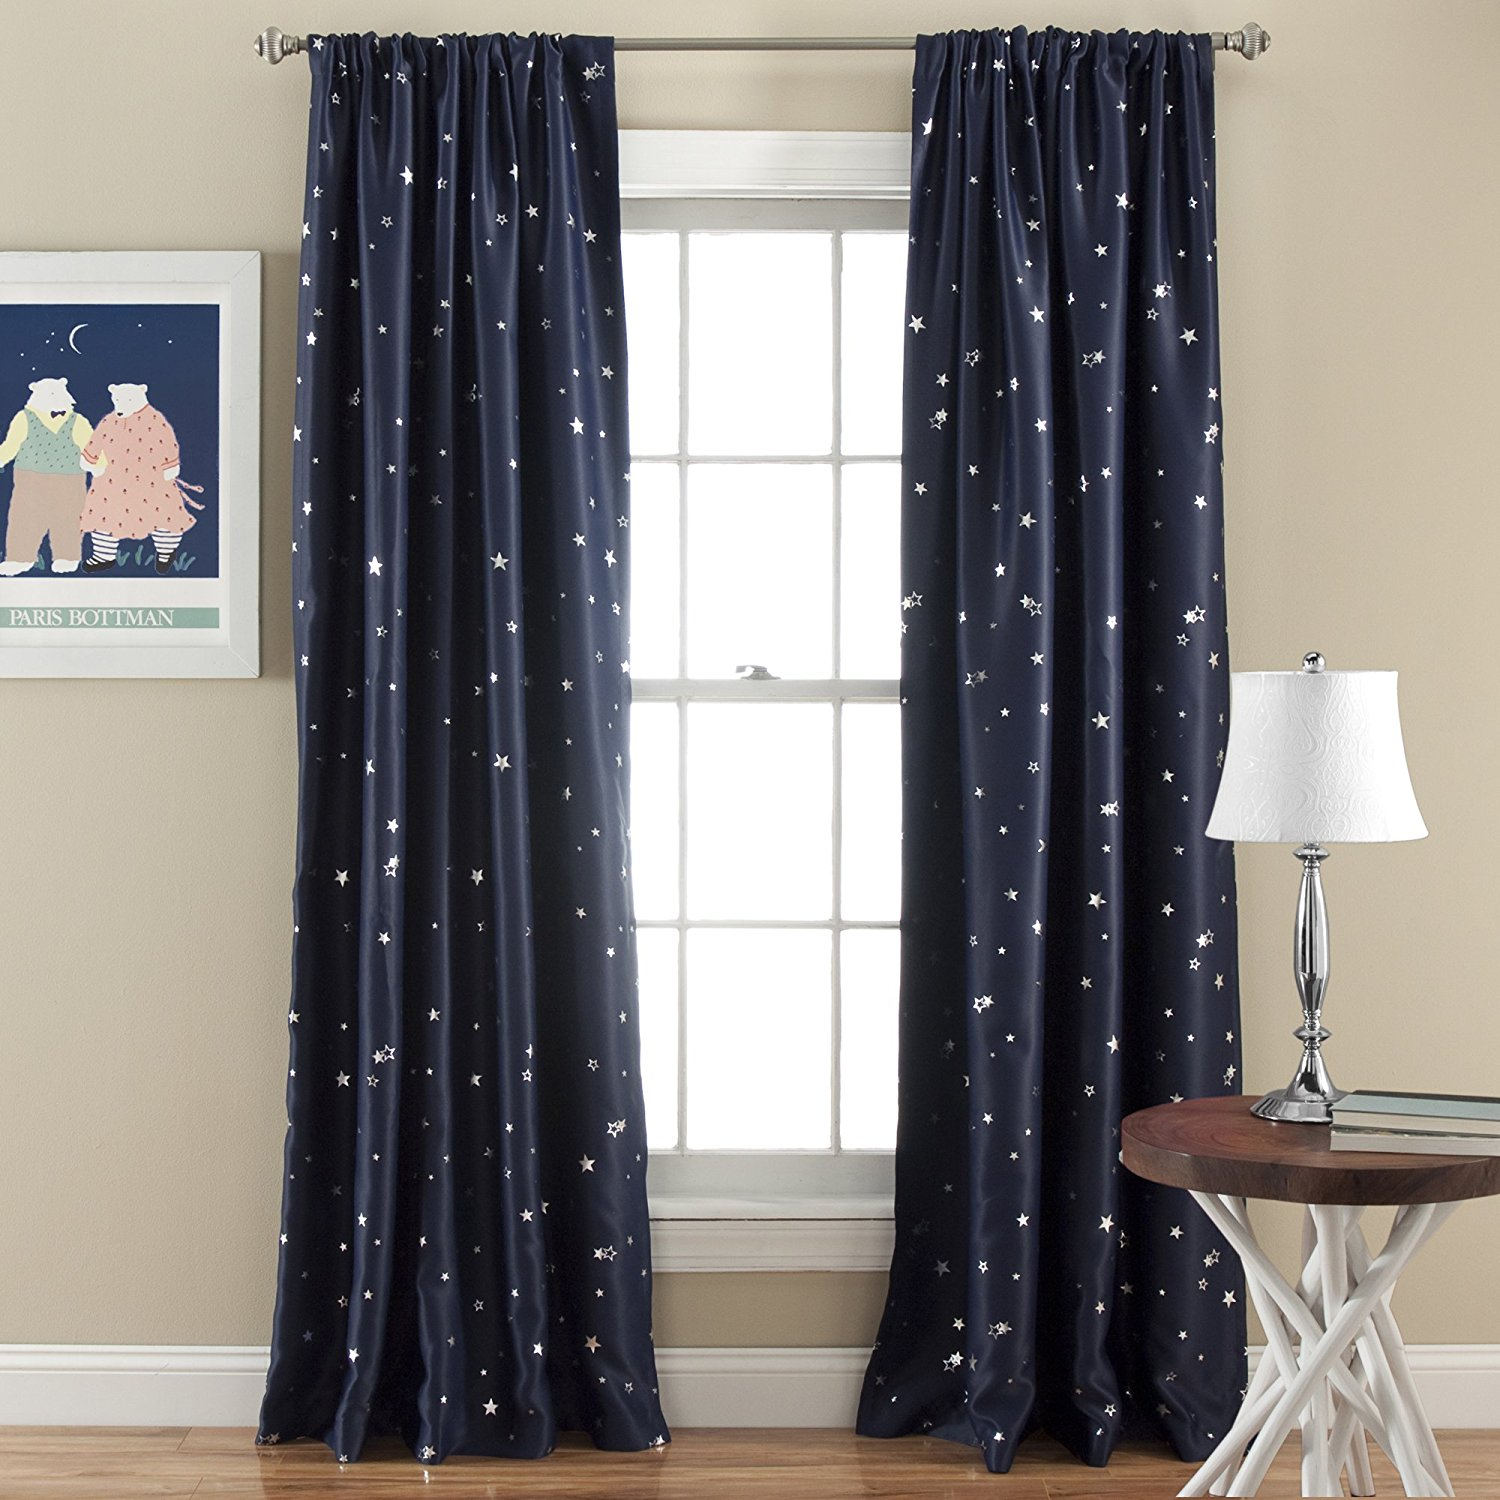 Window Curtain For Living Room Bedroom